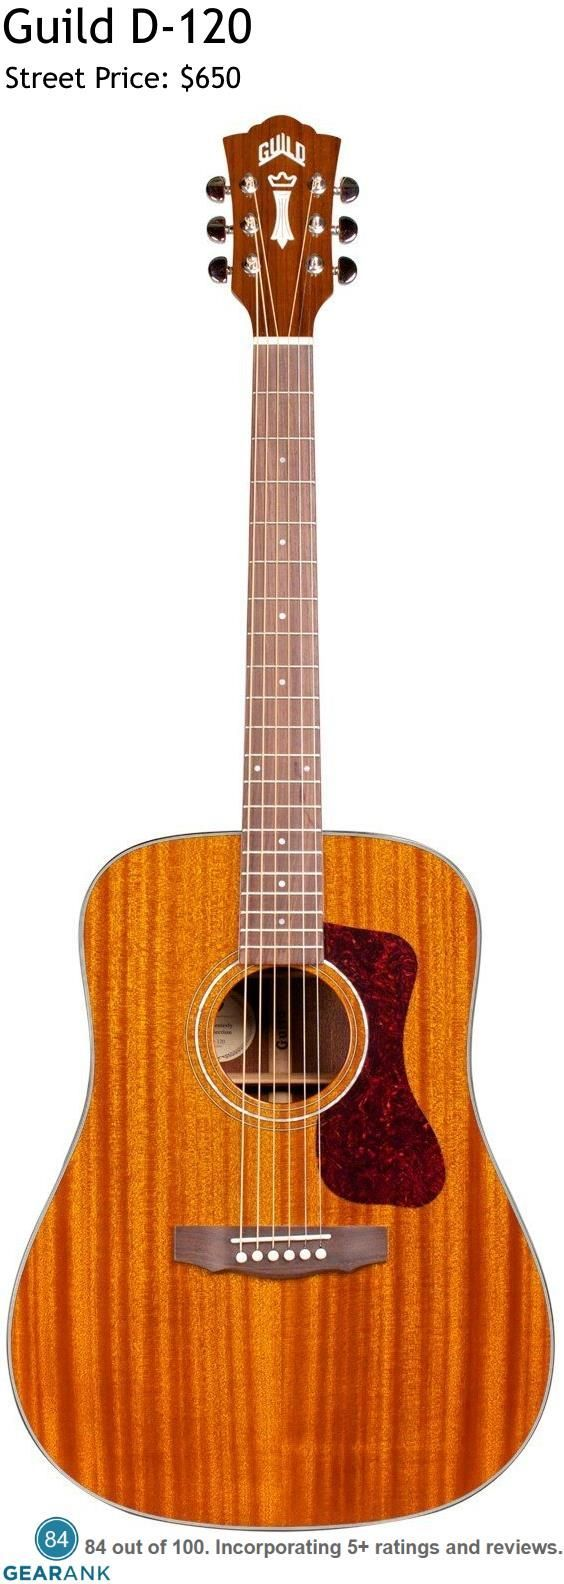 Guild D 120 Acoustic Guitar Dreadnought Size Body Built With Solid African Mahogany Top Back And Sides The D Guitar Acoustic Guitar Guild Acoustic Guitars